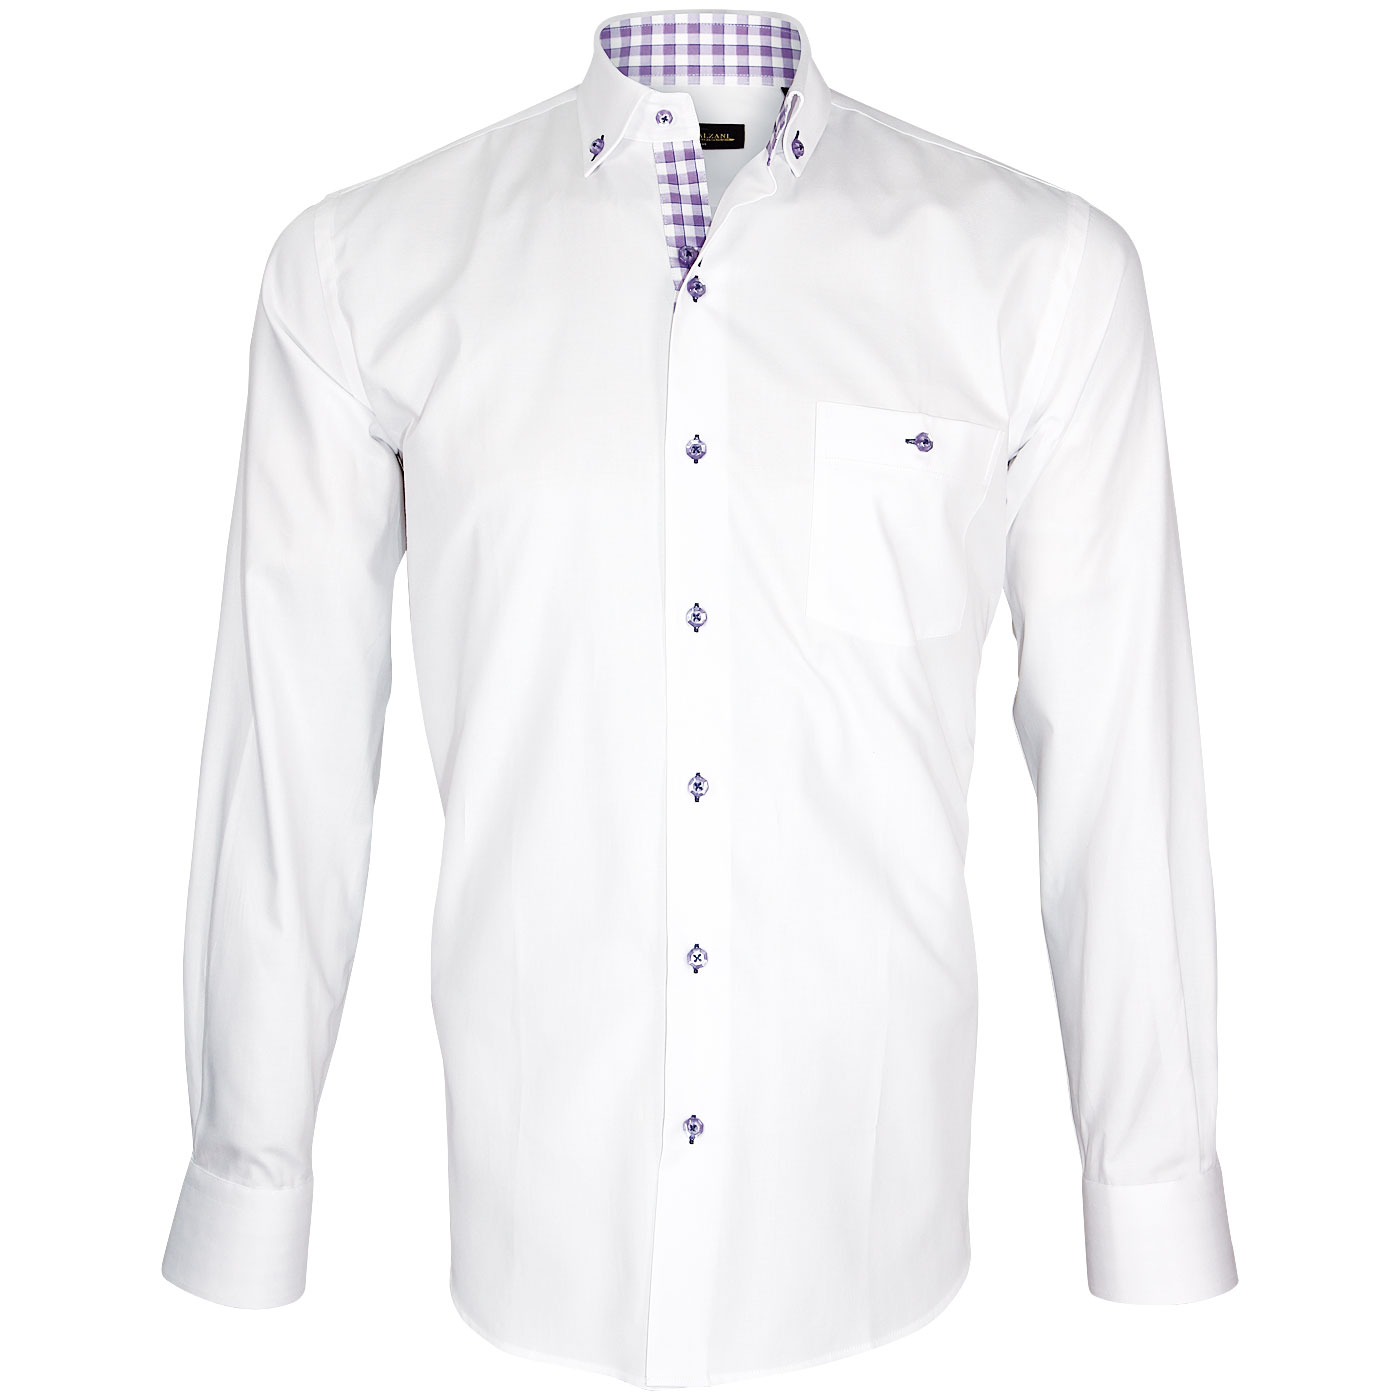 Regular fit shirt